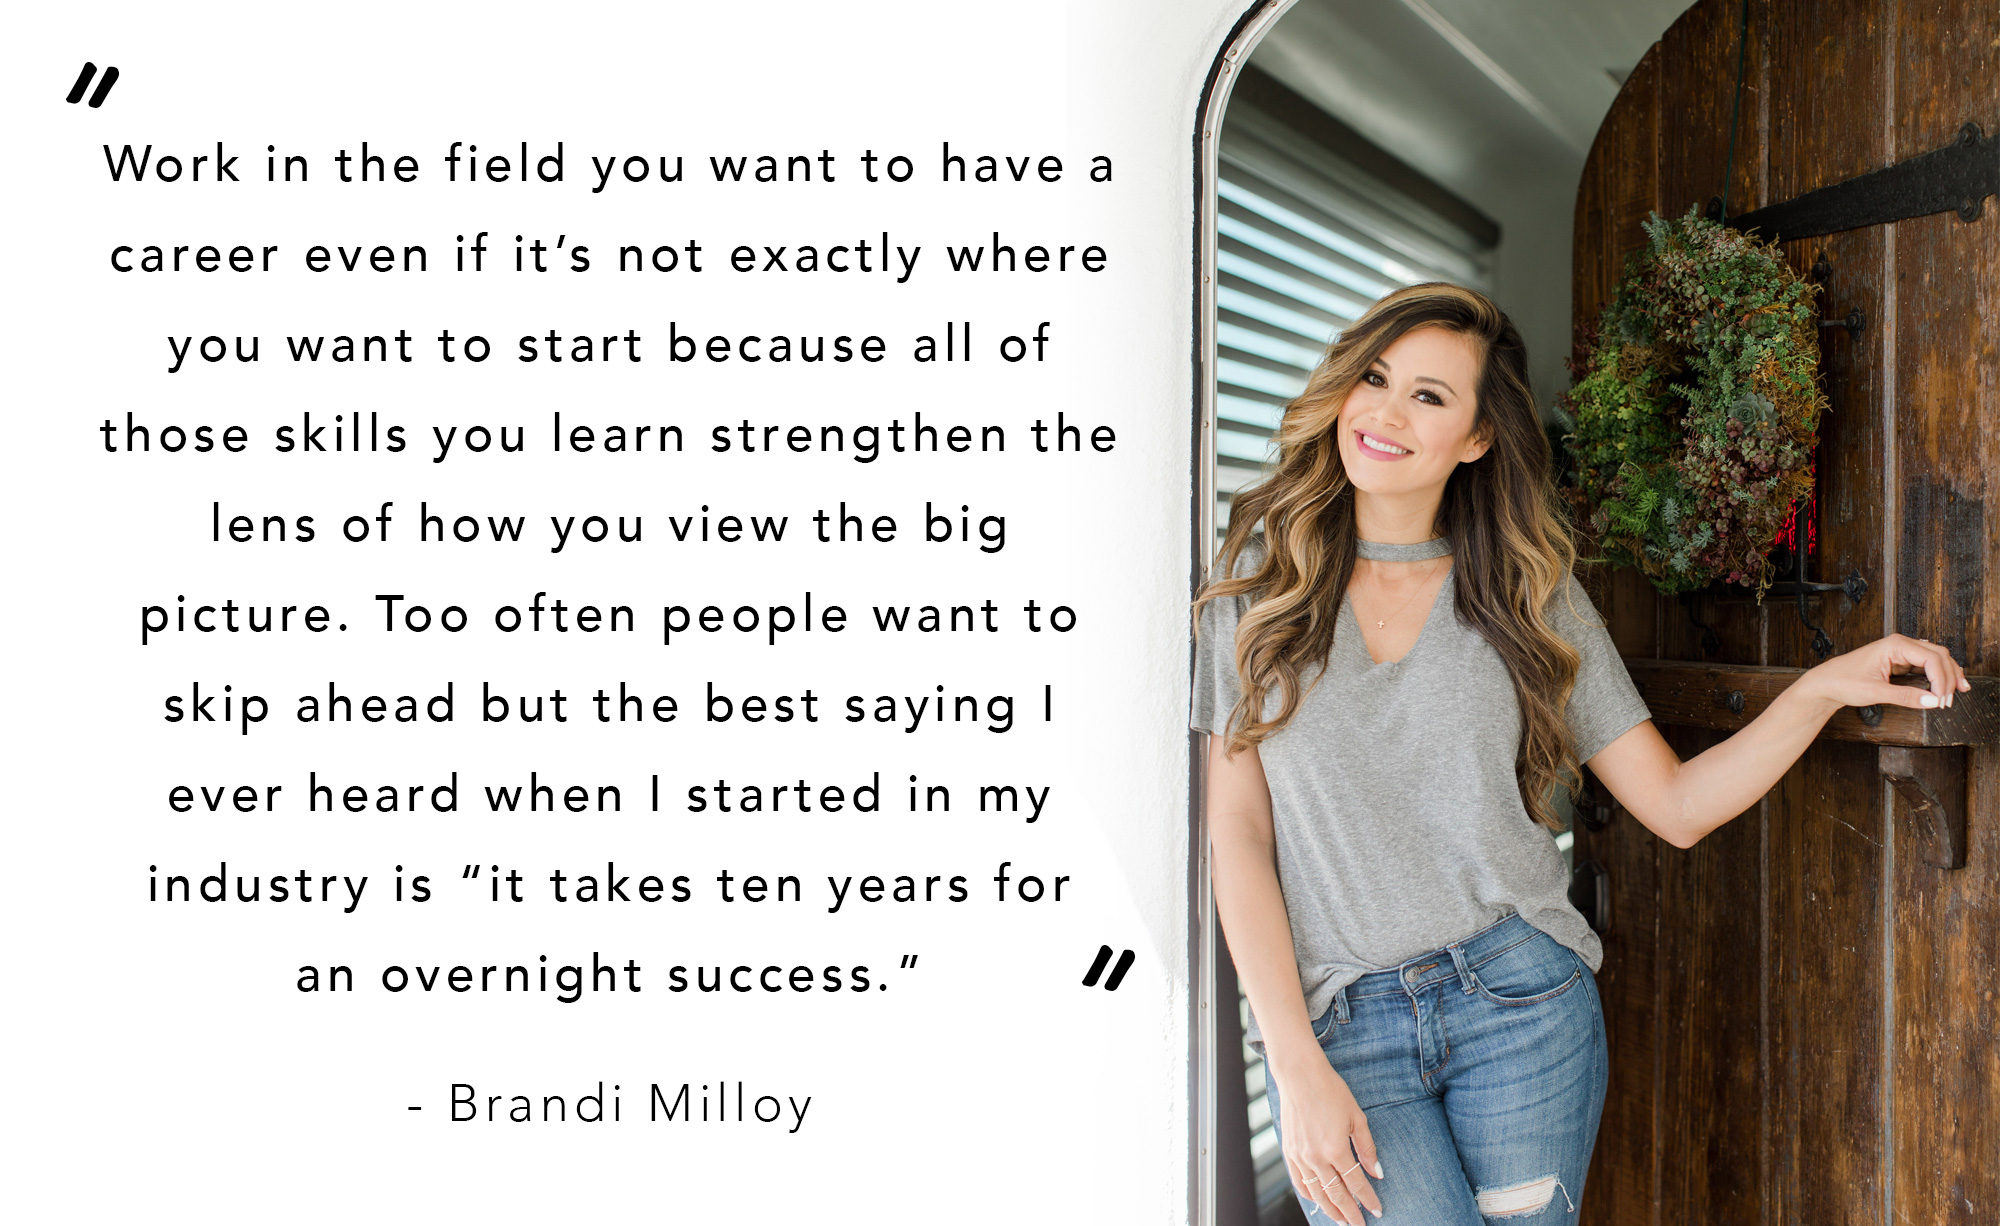 Brandi Milloy, interview with food network host on how to balance motherhood with work and networking and more!